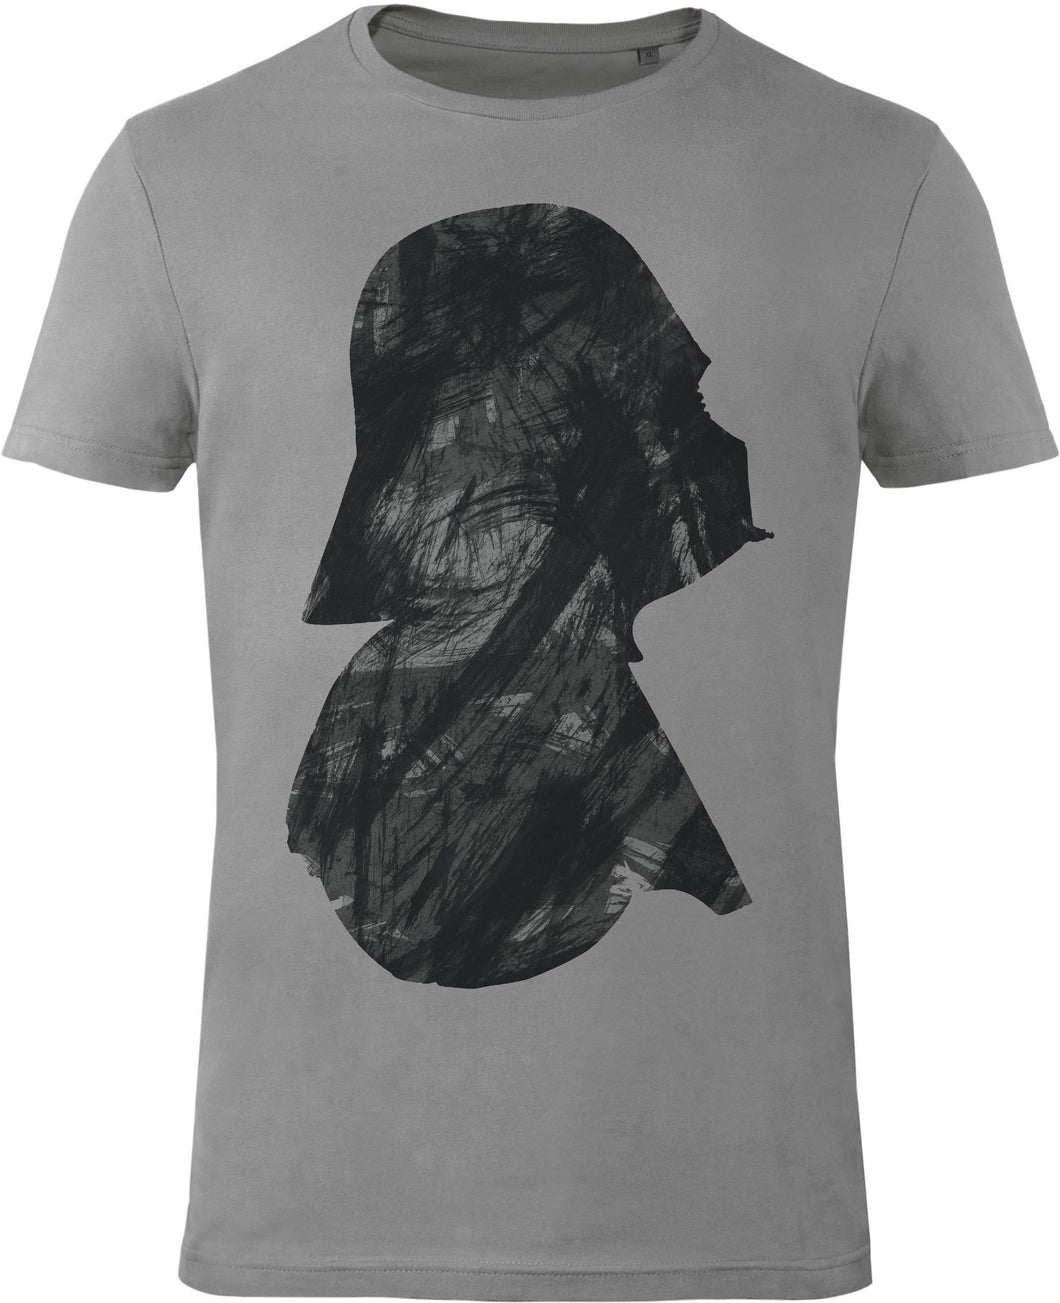 Musterbrand T-Shirt »Vader Profile« Boxed Star Wars Kollektion Vintage Look